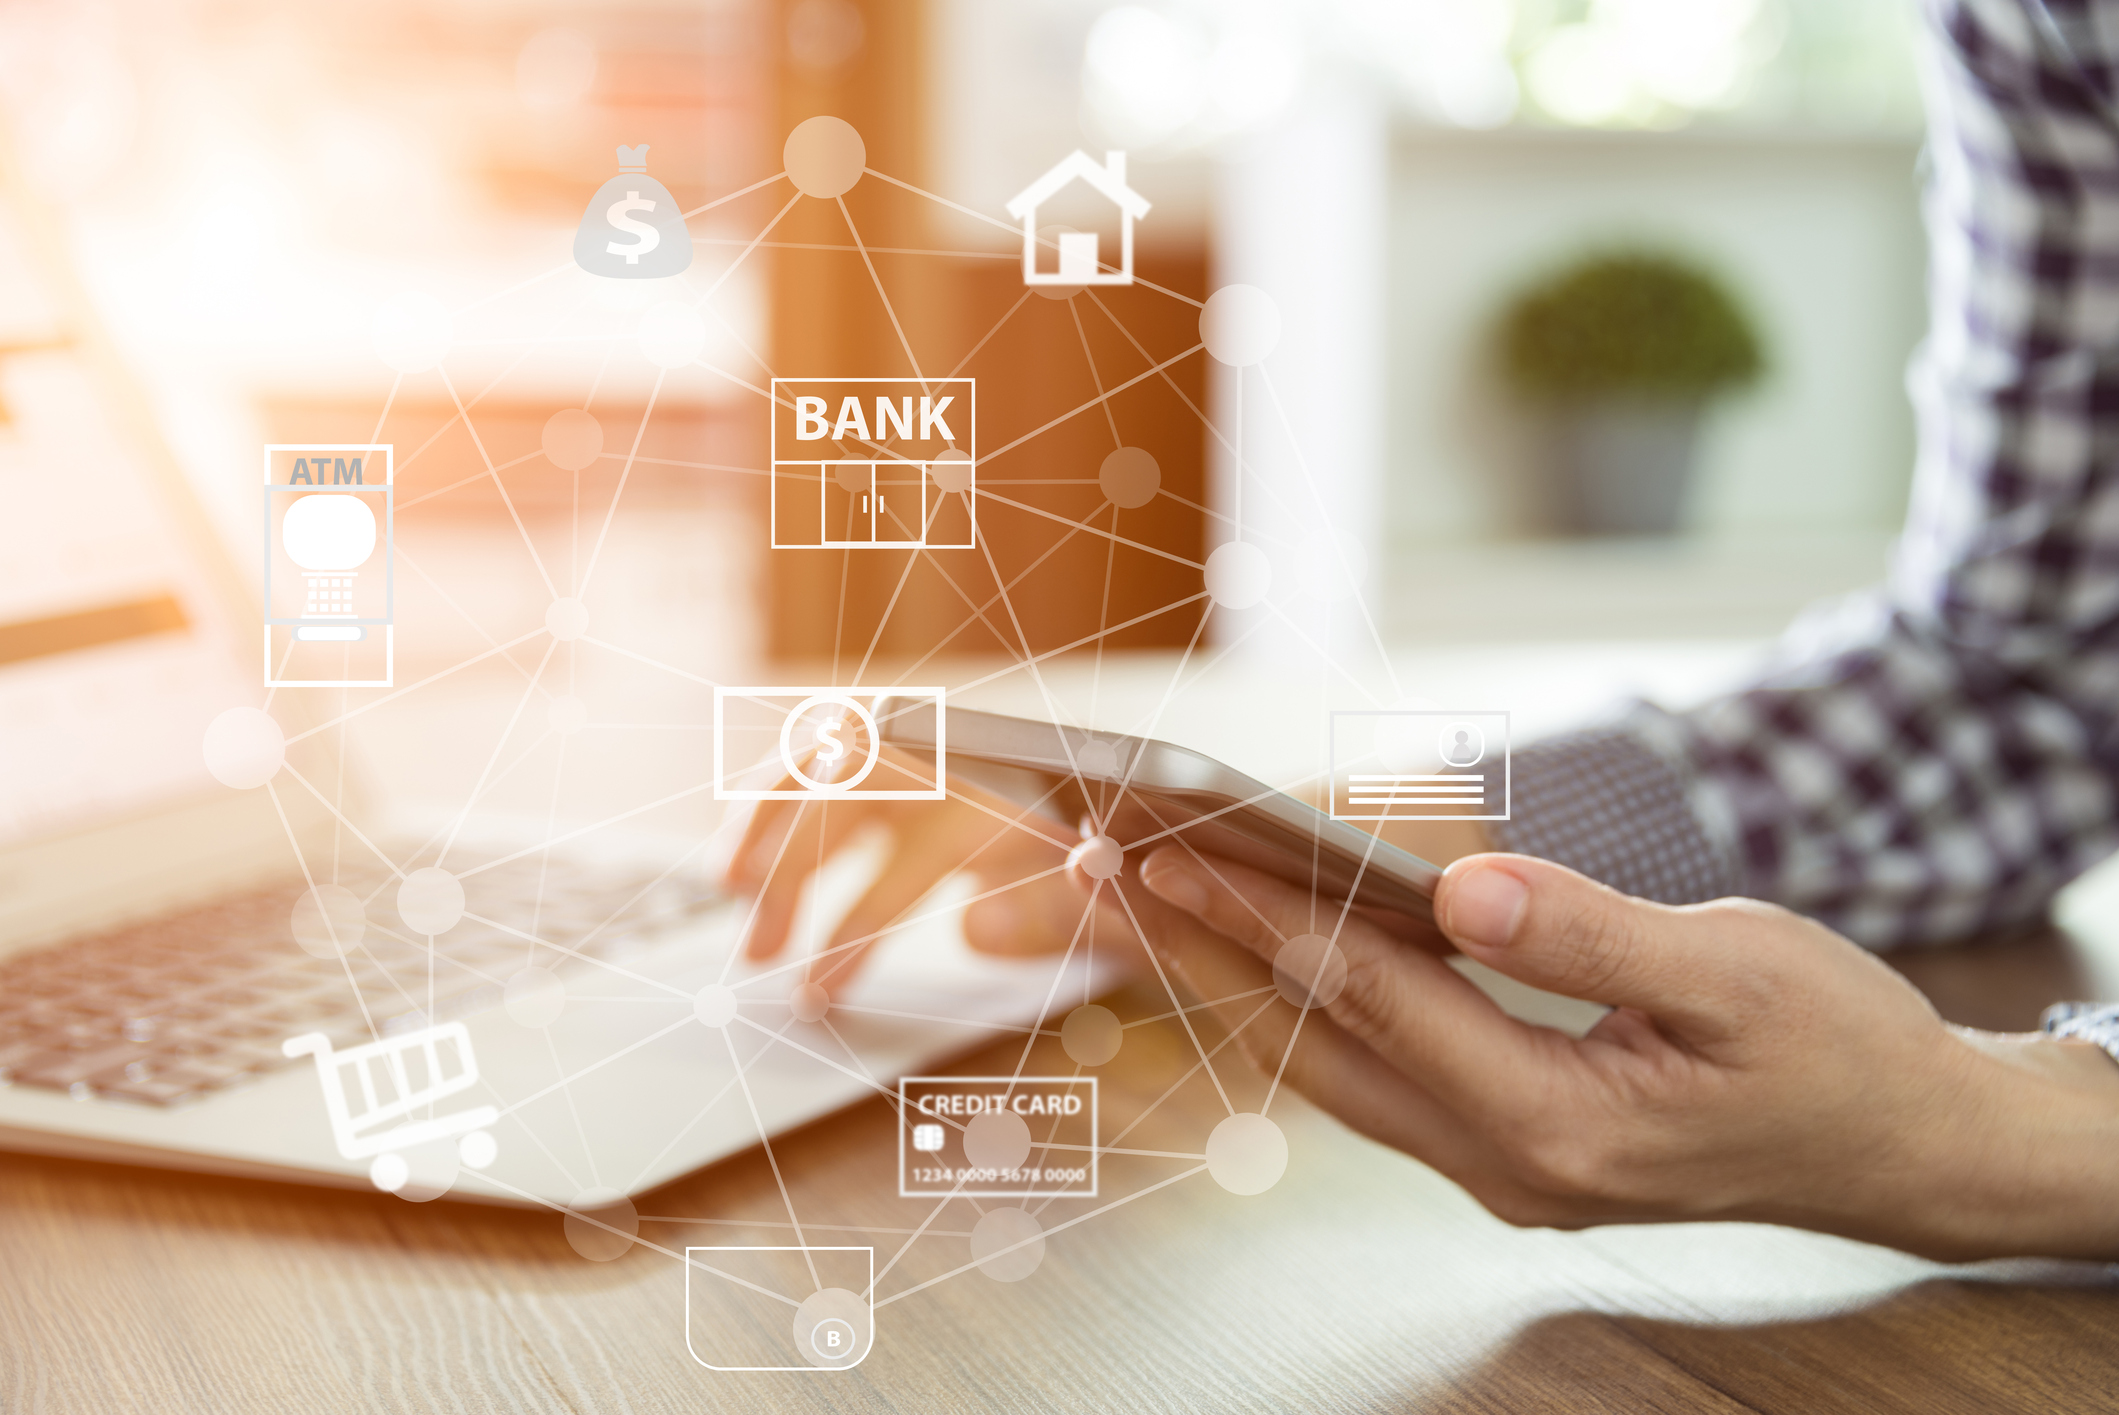 open banking and psd2 disruption or confusion